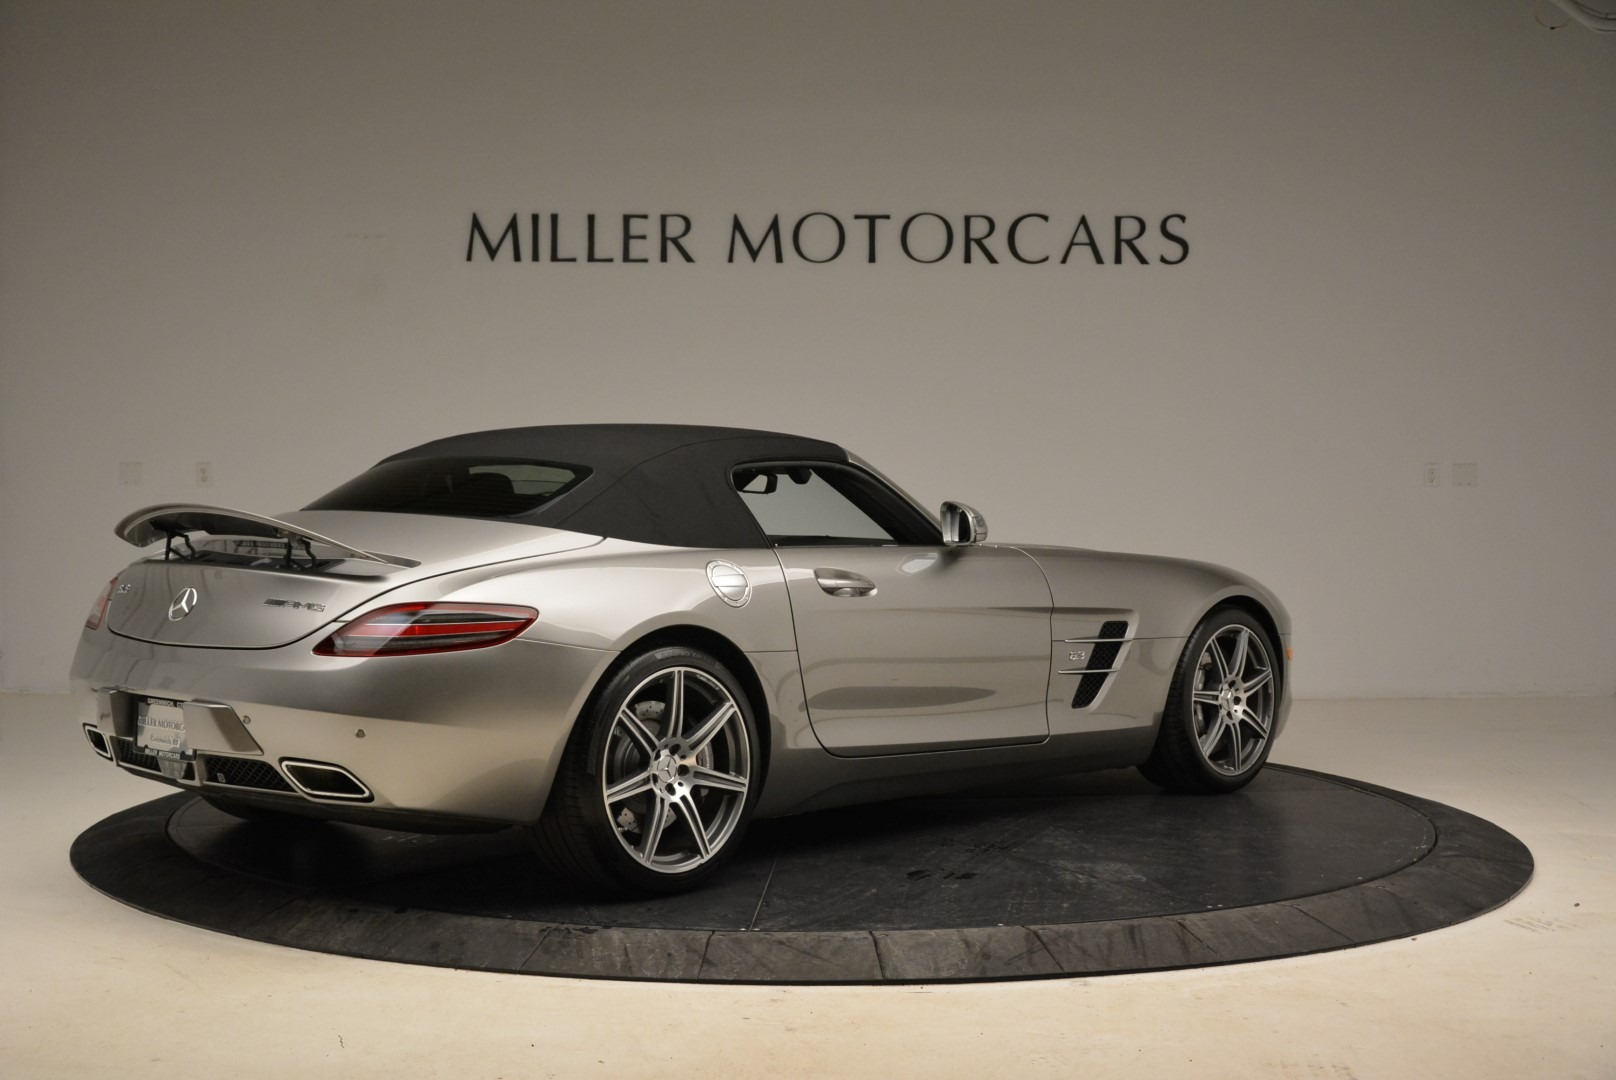 Used 2012 Mercedes-Benz SLS AMG  For Sale In Westport, CT 2068_p17